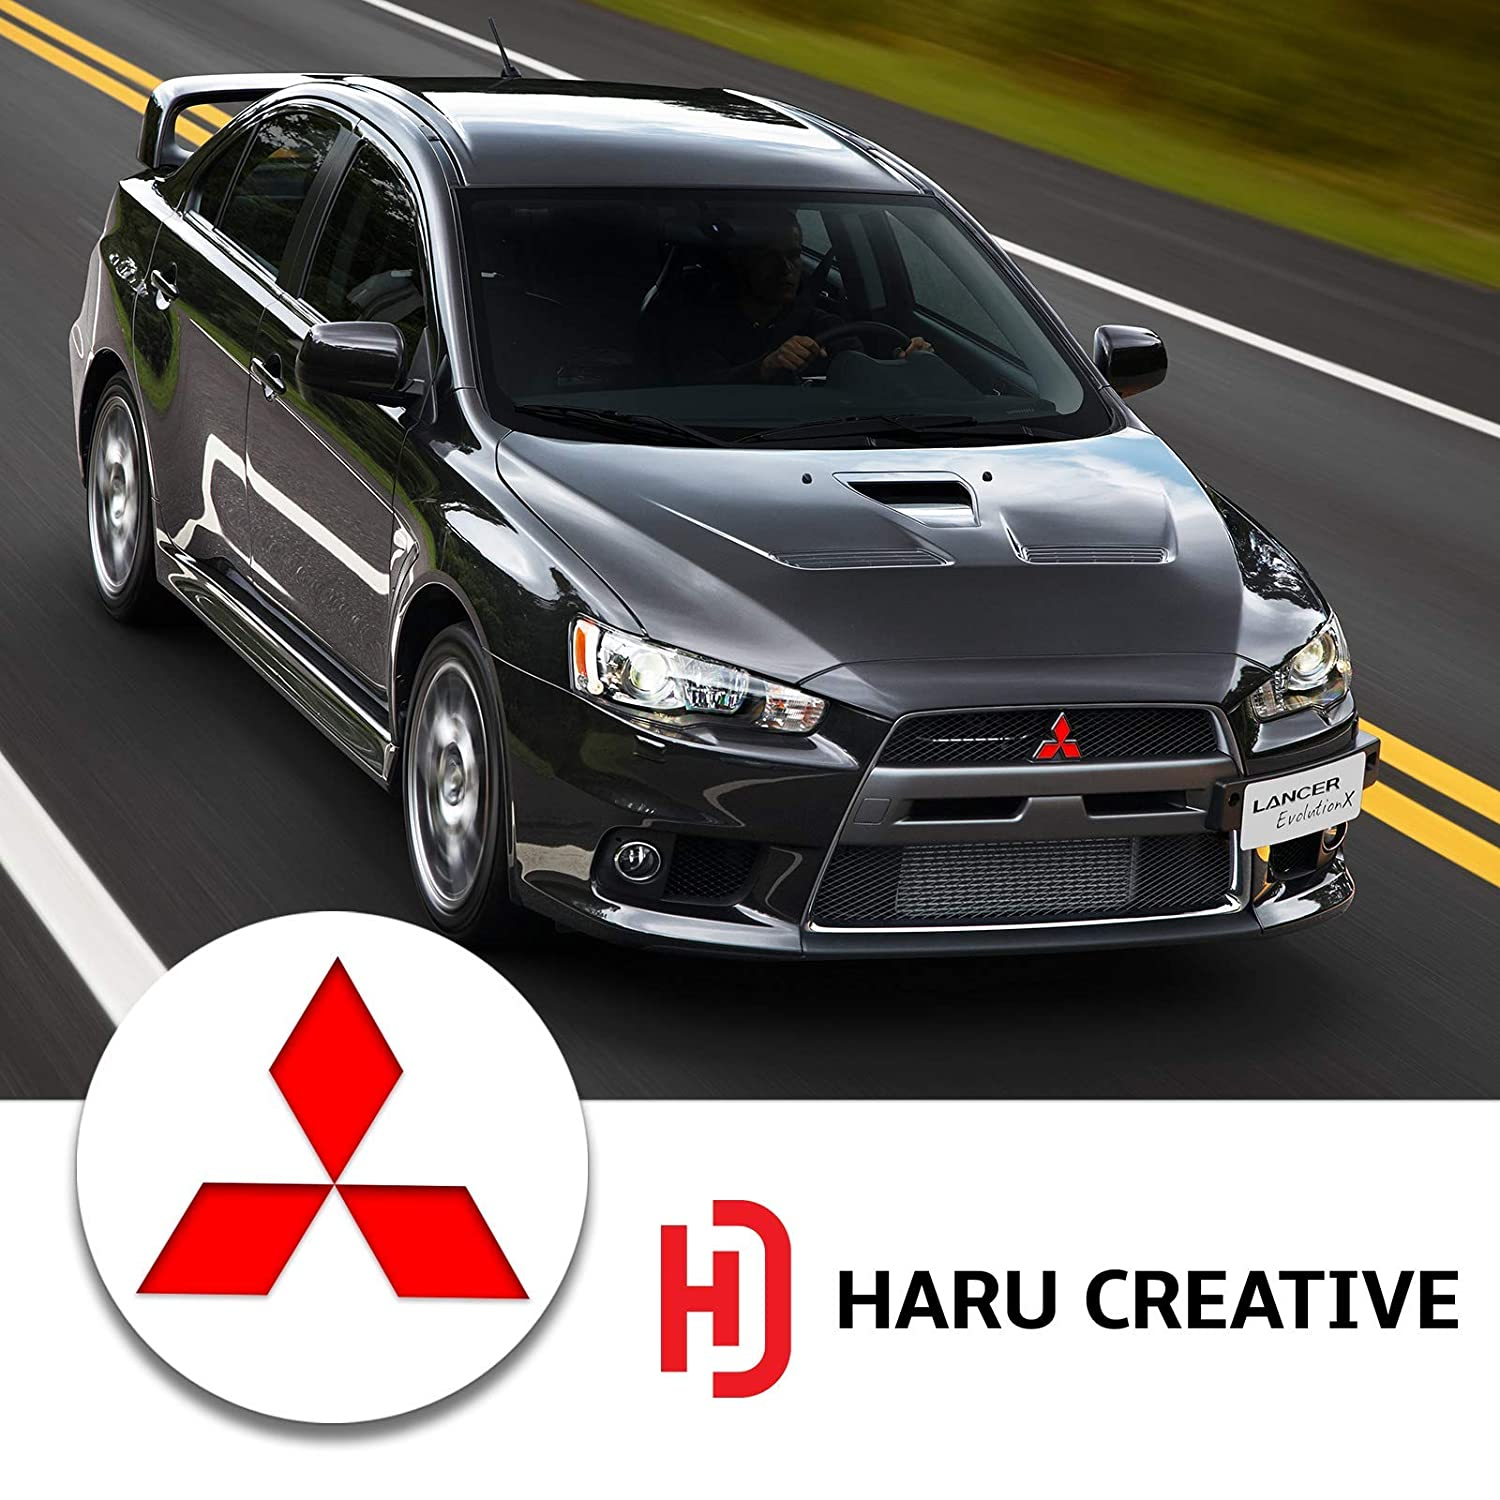 - Matte Gold Loyo Front Hood Grille Rear Trunk Tailgate Overlay Vinyl Decal Sticker Compatible with and Fits All Mitsubishi Lancer 2008-2014 Haru Creative